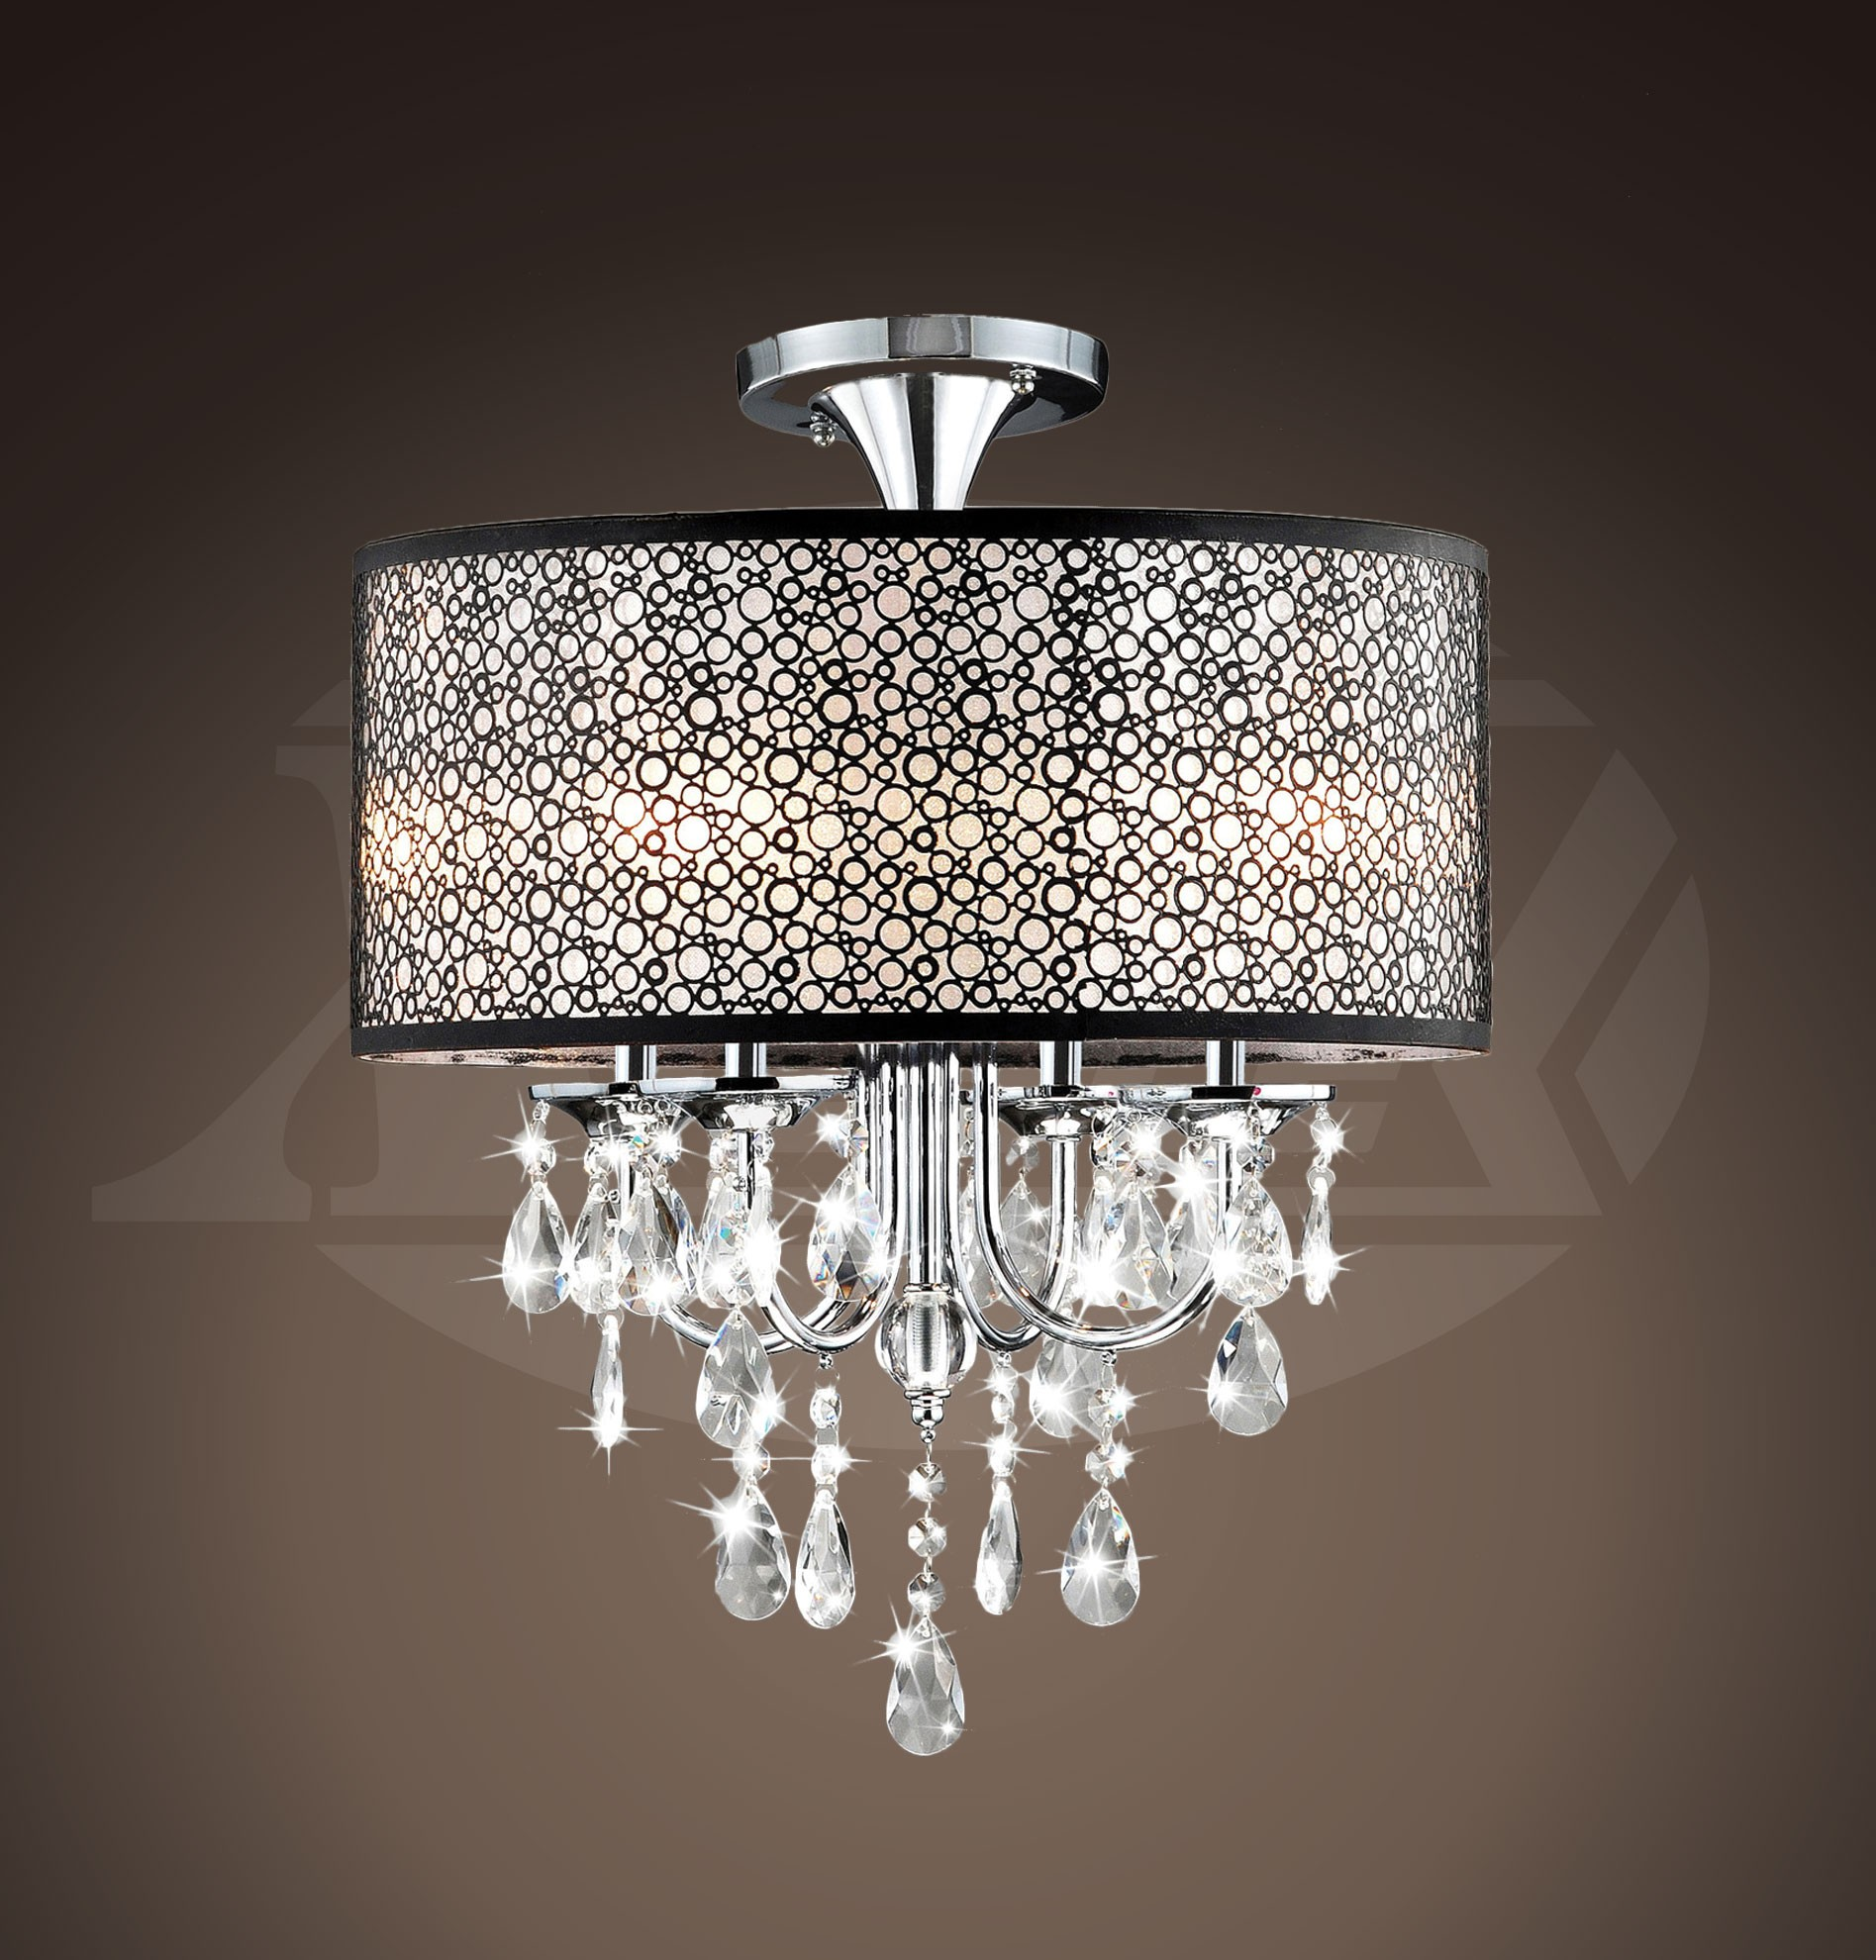 Brooklynn Black Bubble Shade Crystal And Chrome Flushmount Chandelier 17 W X 7 5 H Xtkb727dw336x